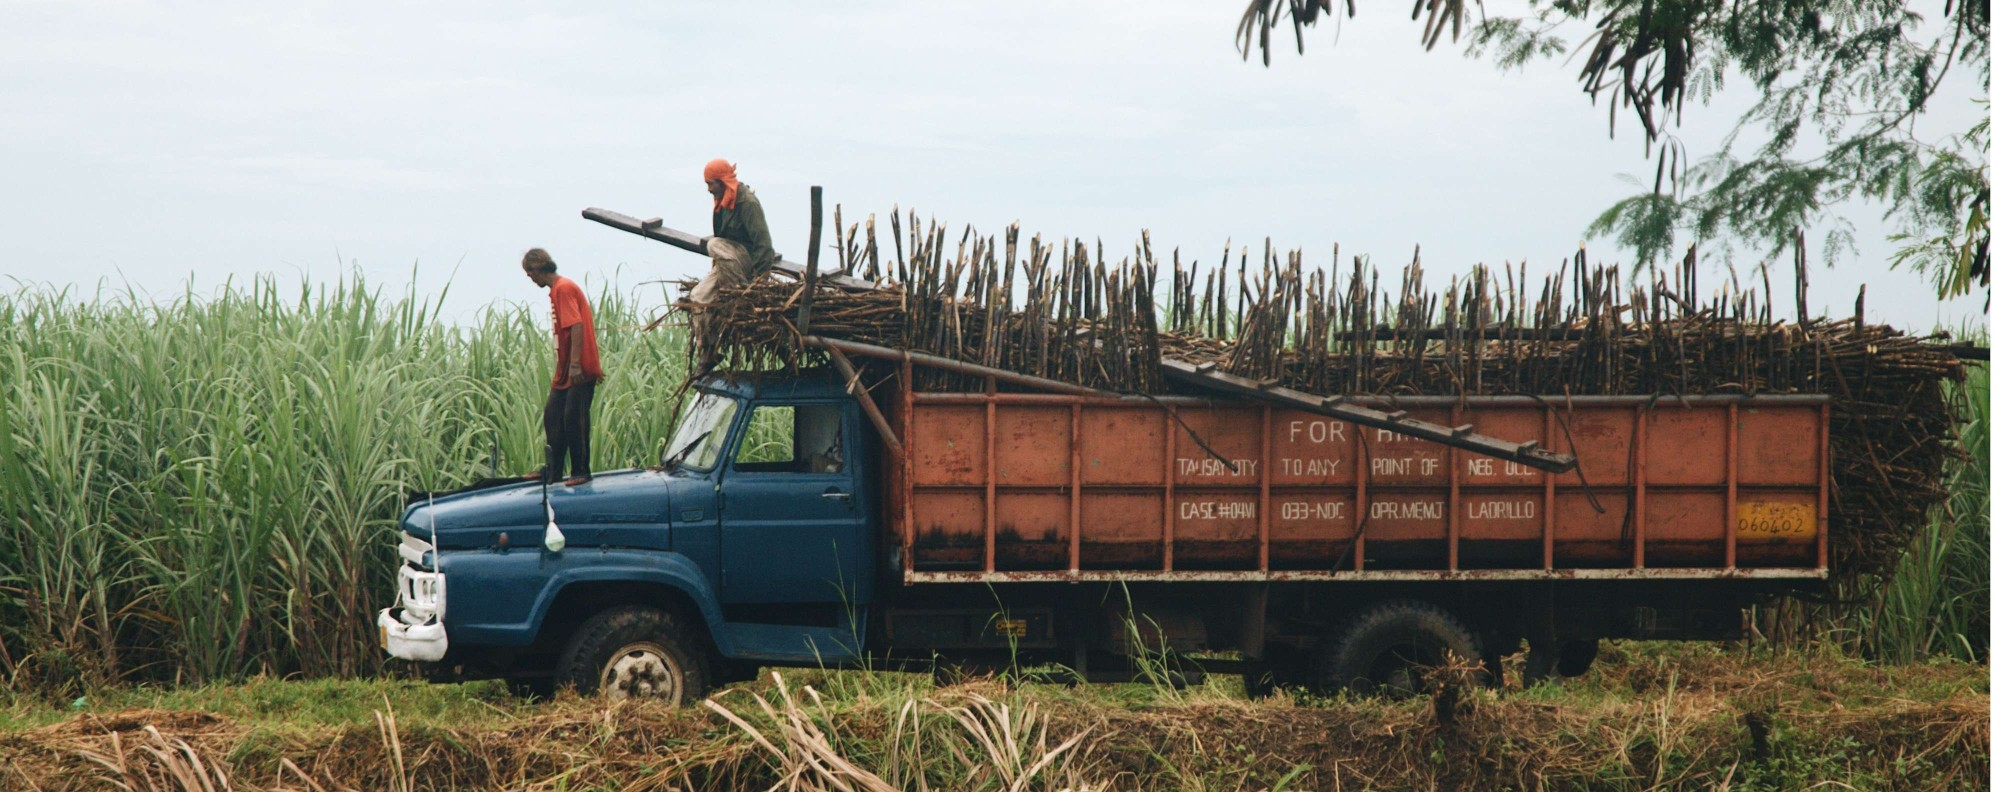 Sugar cane trucks ply the roads in Bacolod. Photo: Karim Raslan